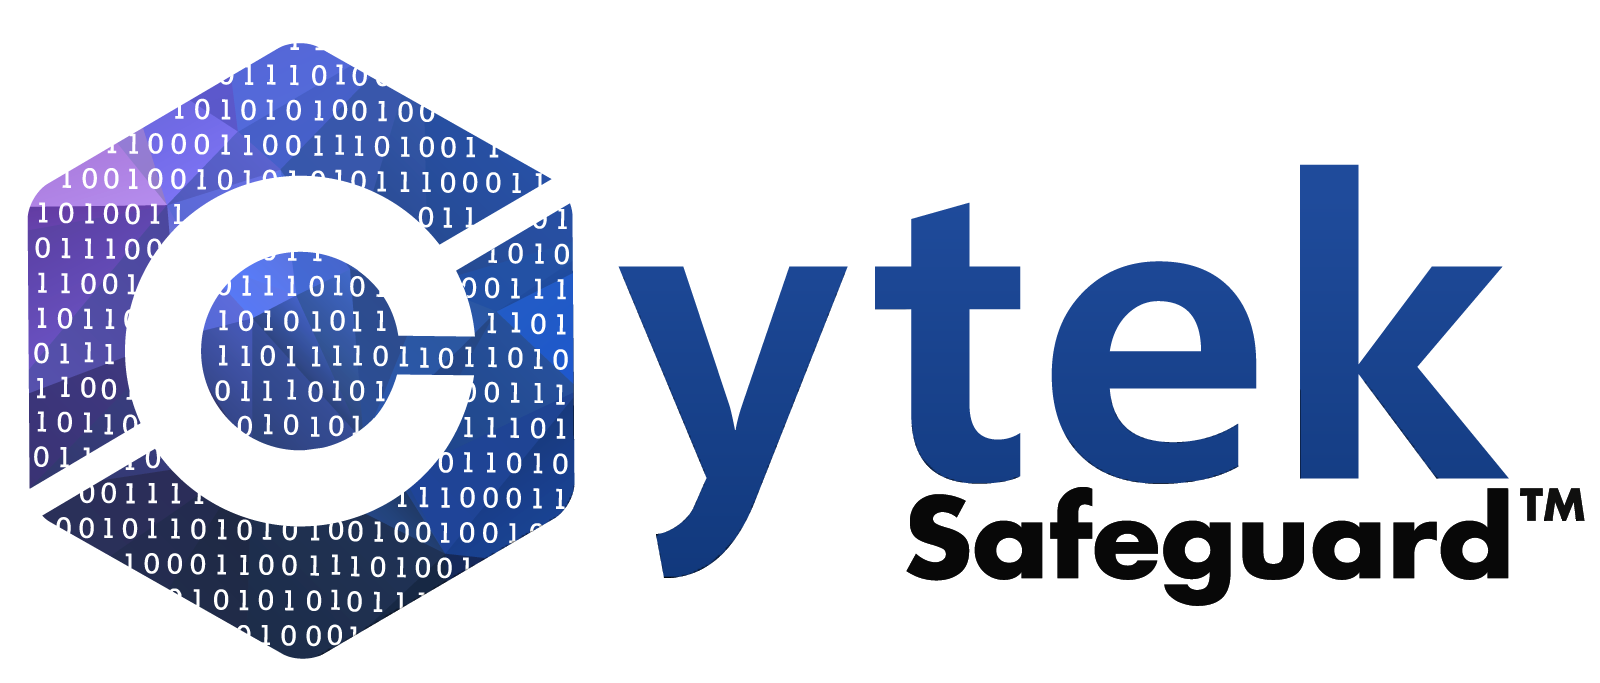 Cytek Safeguard